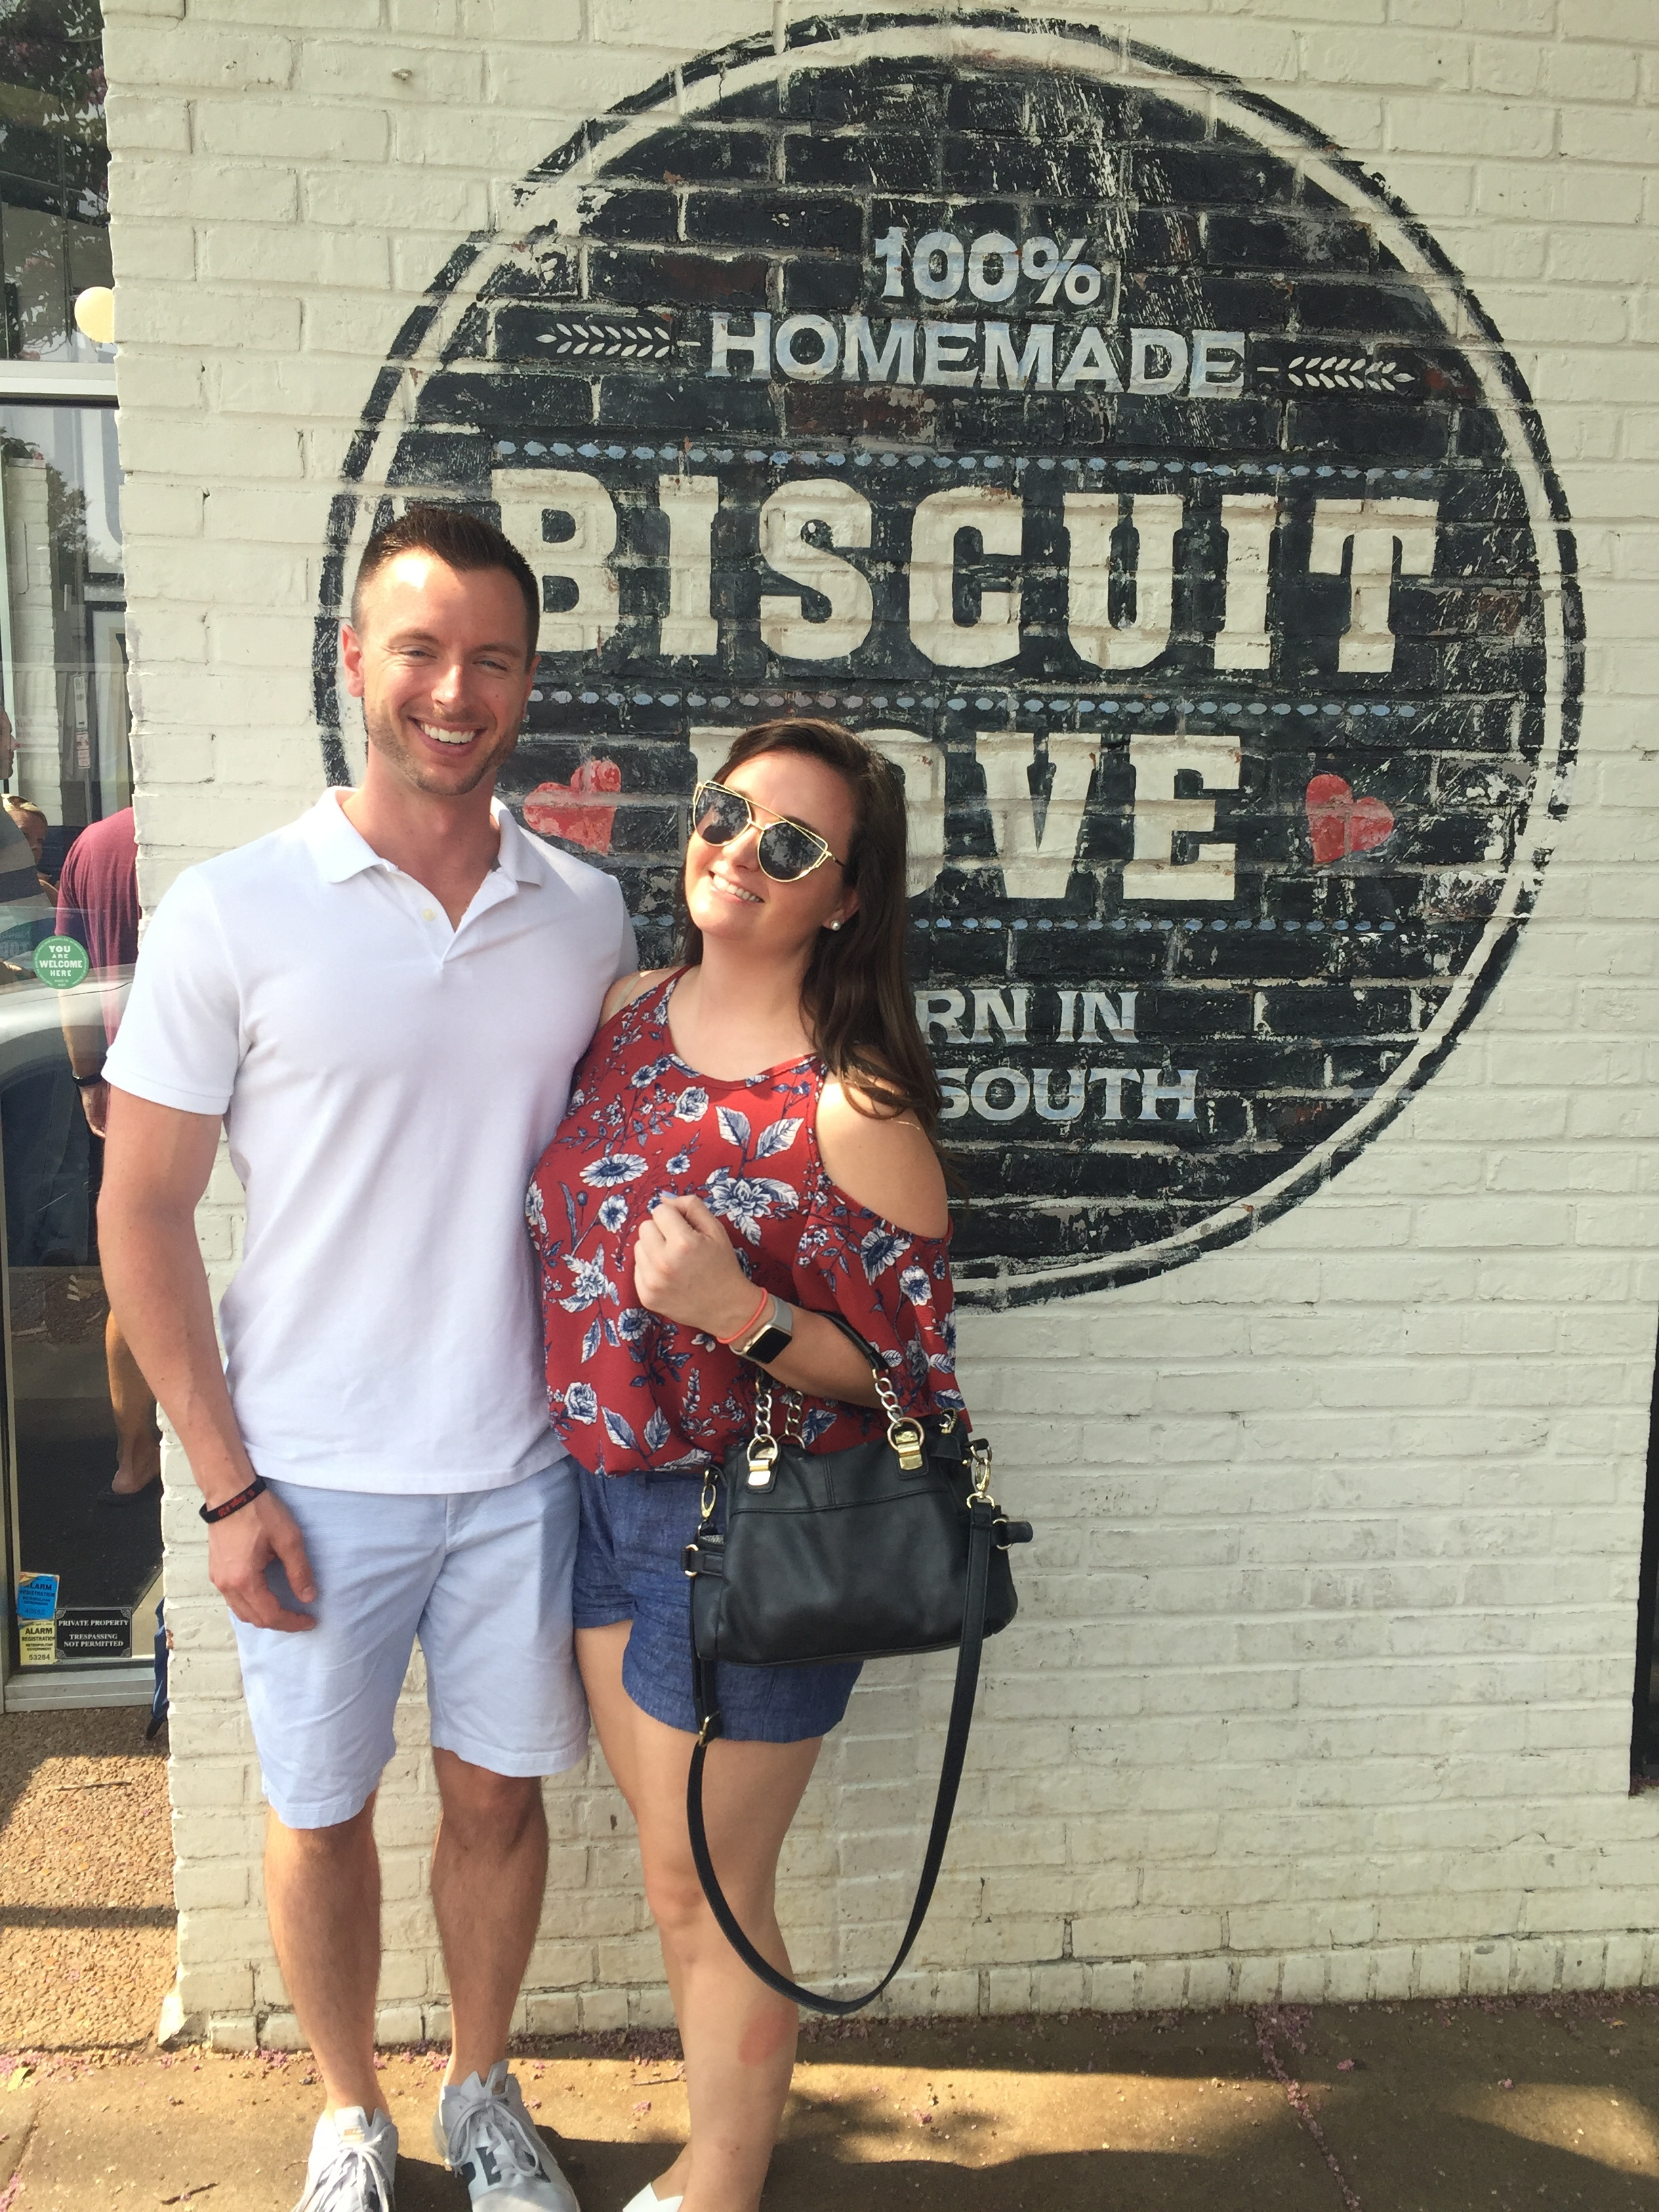 When one of your best friends stops in town, biscuits are in order!